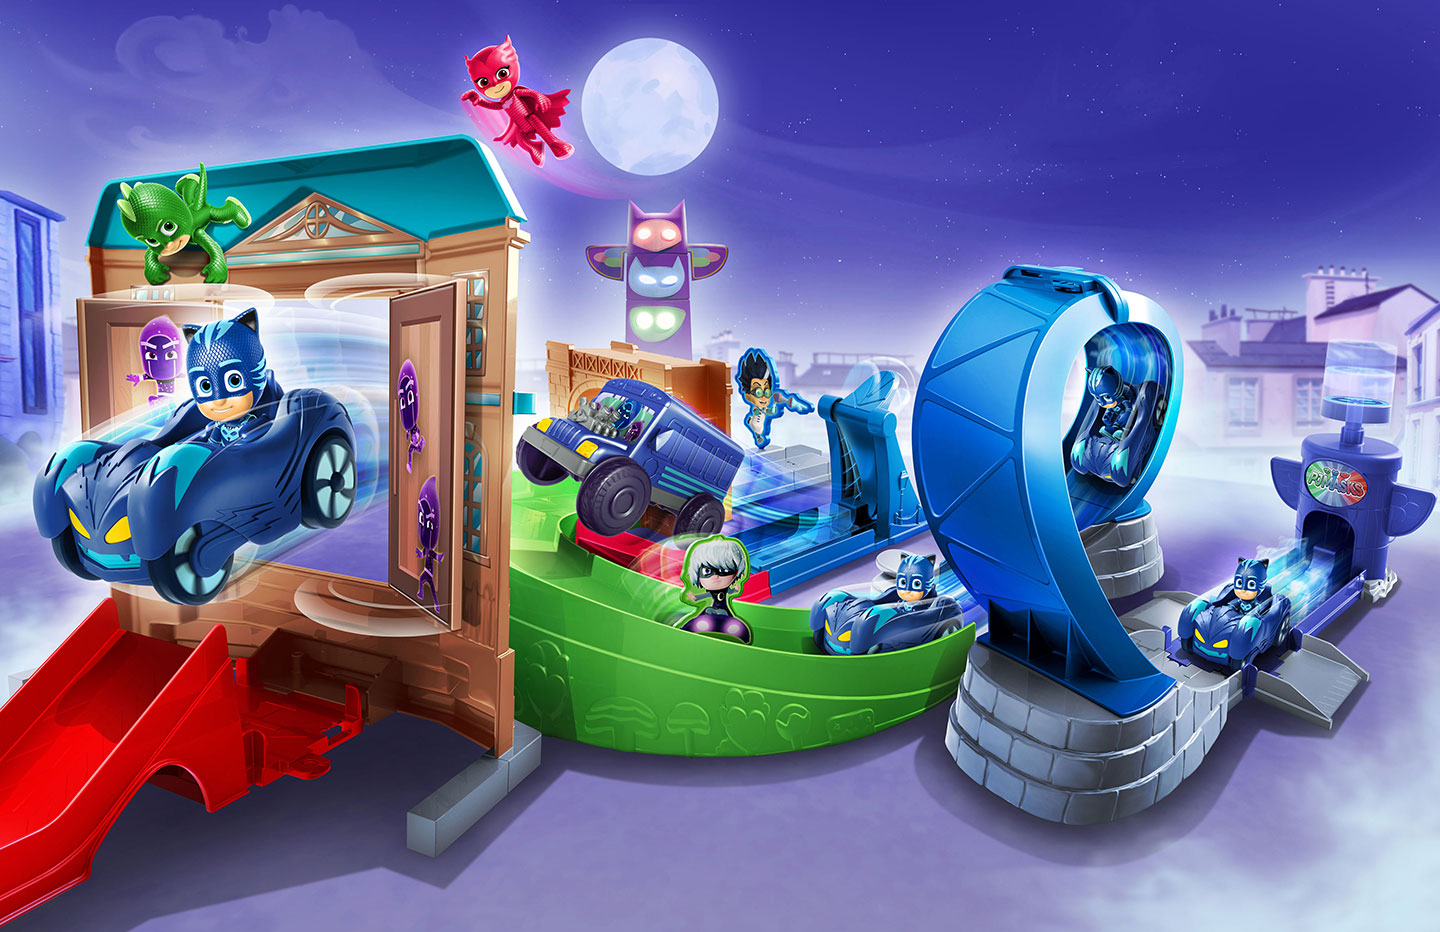 PJ-Masks-Playset-1.jpg